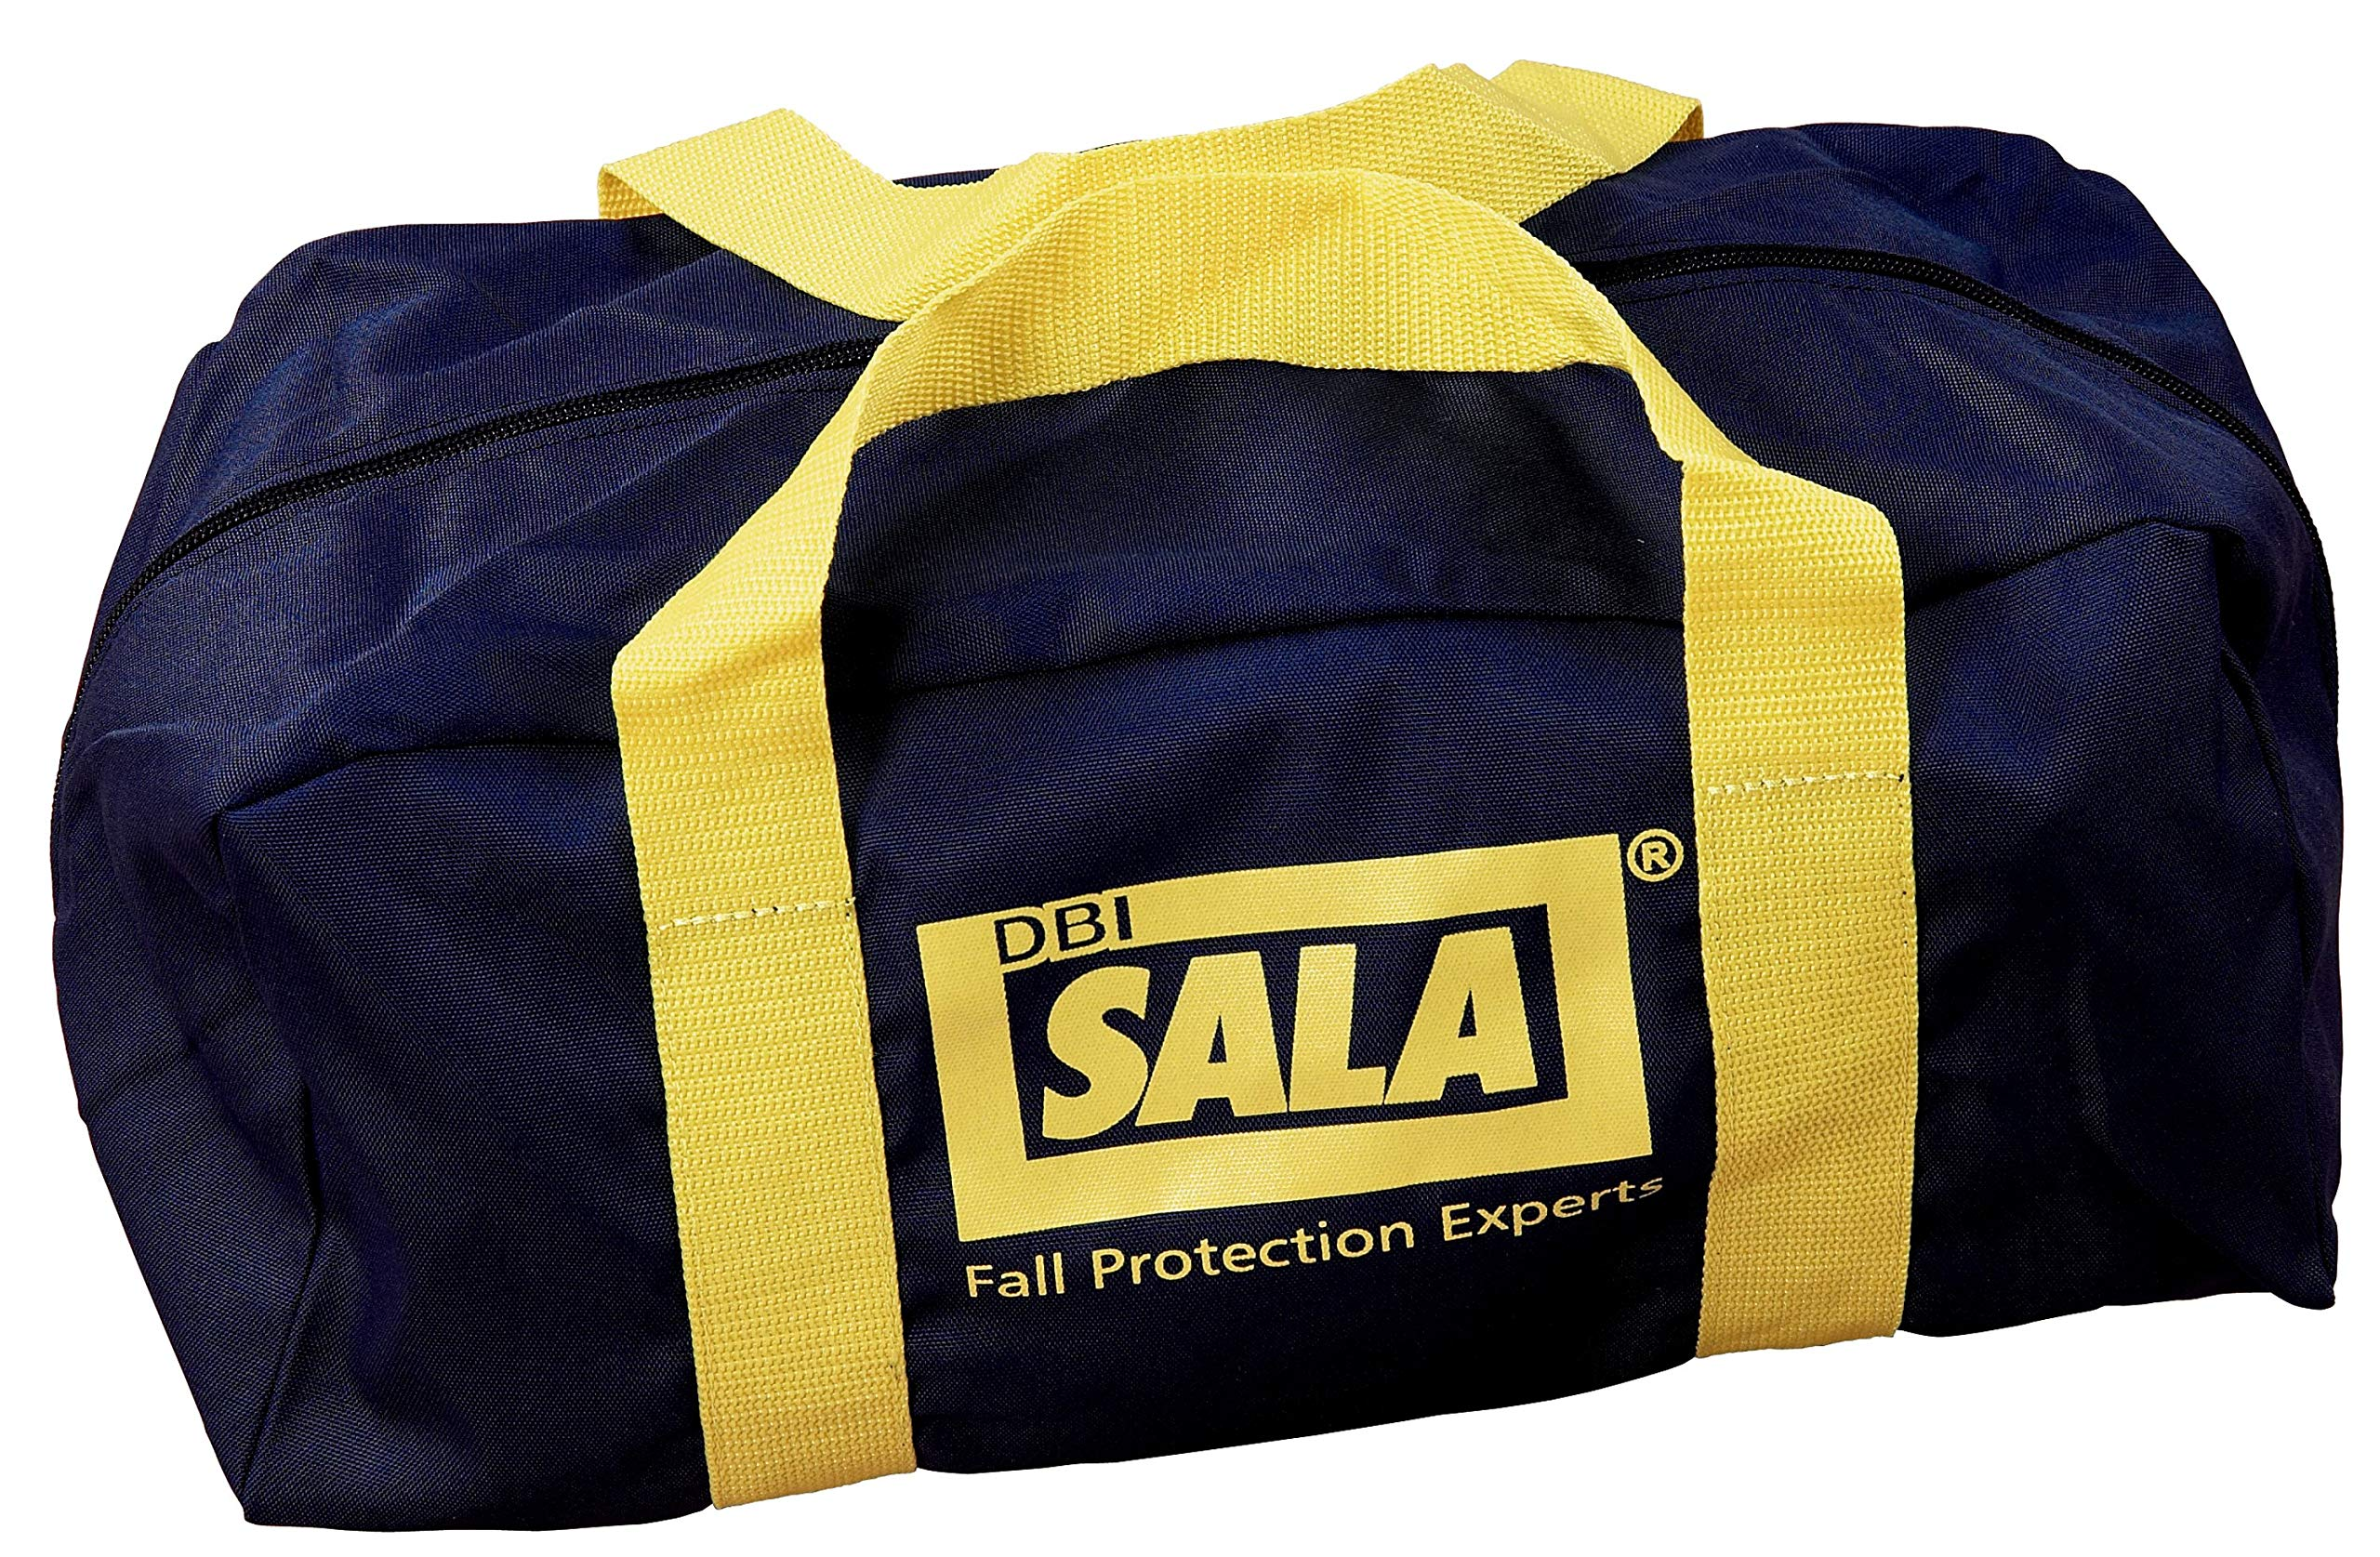 3M DBI-Sala Equipment Carrying & Storage Bag 9511597, Small, 1 Ea by 3M Personal Protective Equipment